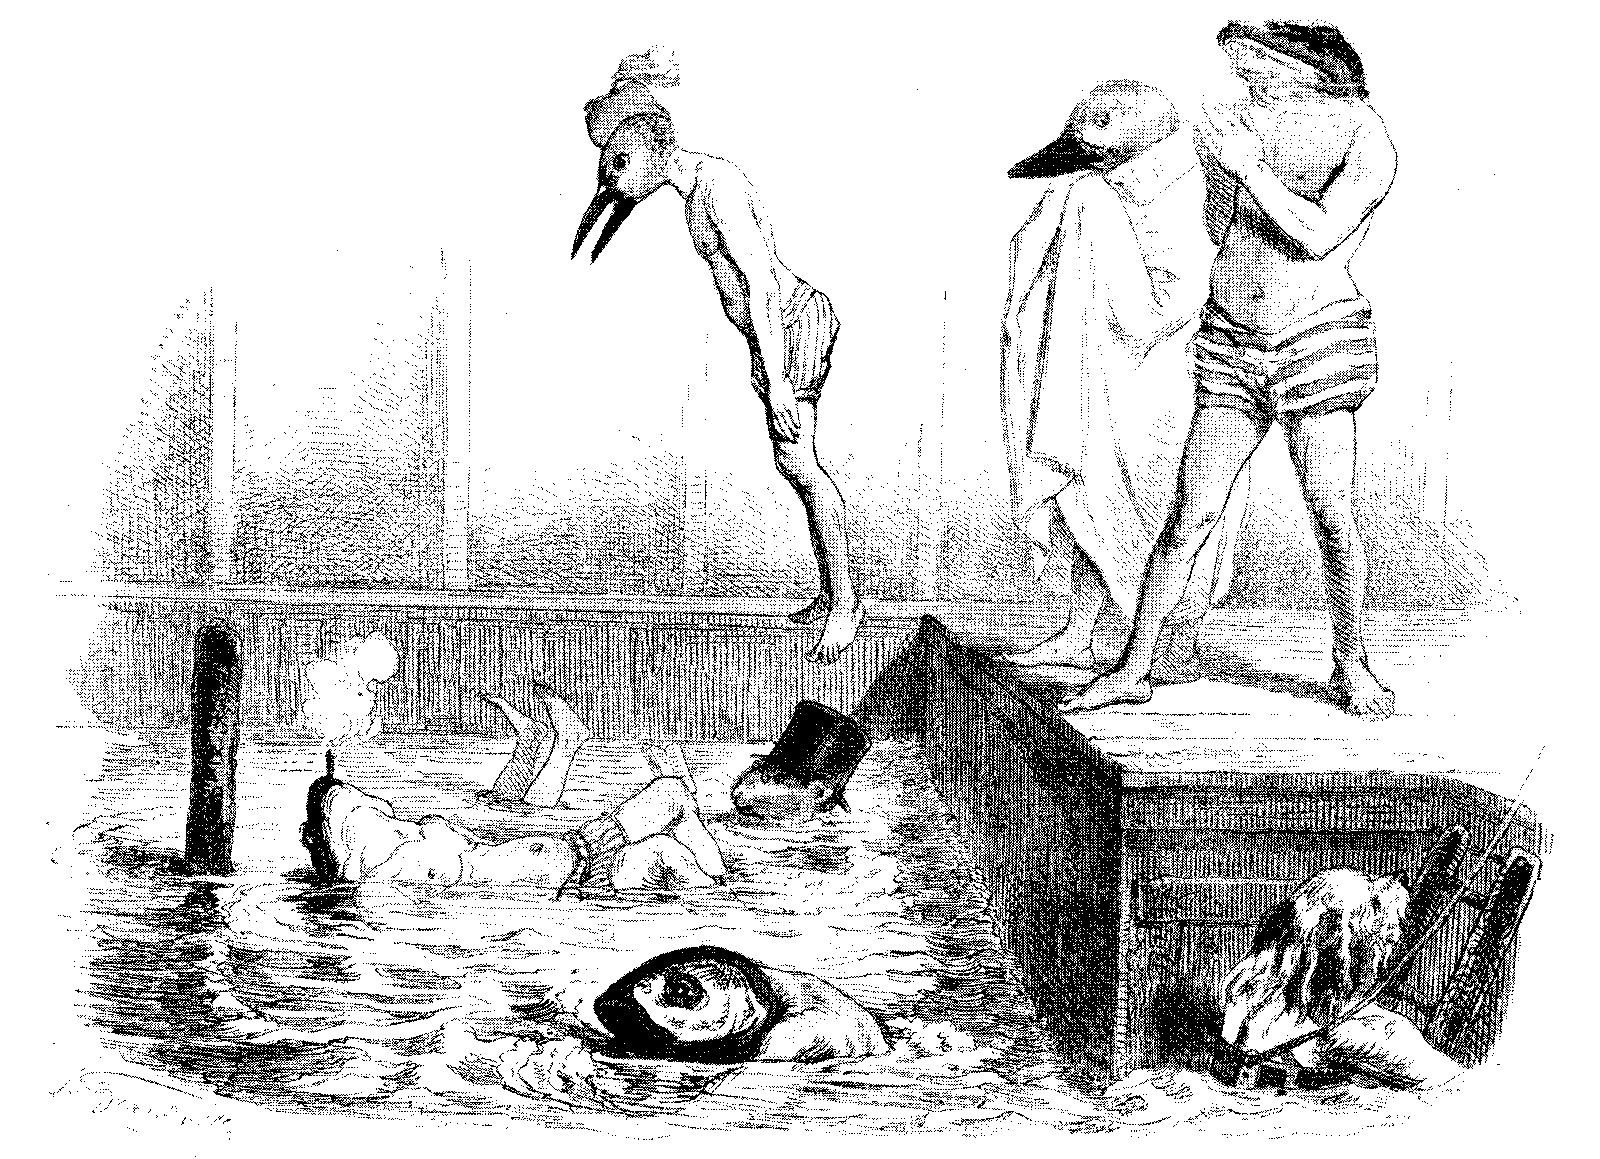 Drawing of animals diving into a pool